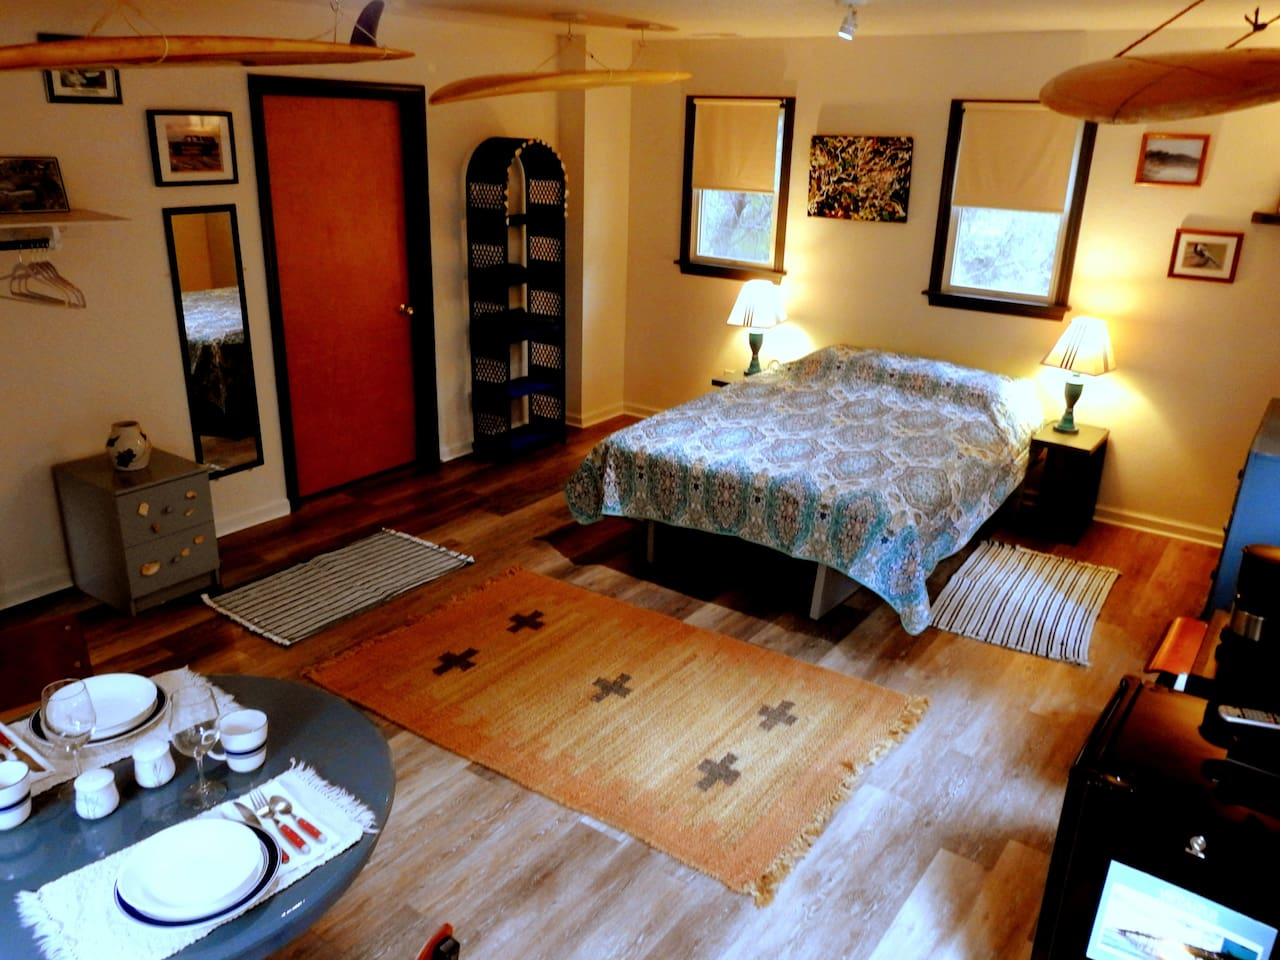 Queen bed, dinning table for 2, eating utensils, mini-fridge, micro wave, Wifi and Cable TV, 1/2 bath and outdoor shower.